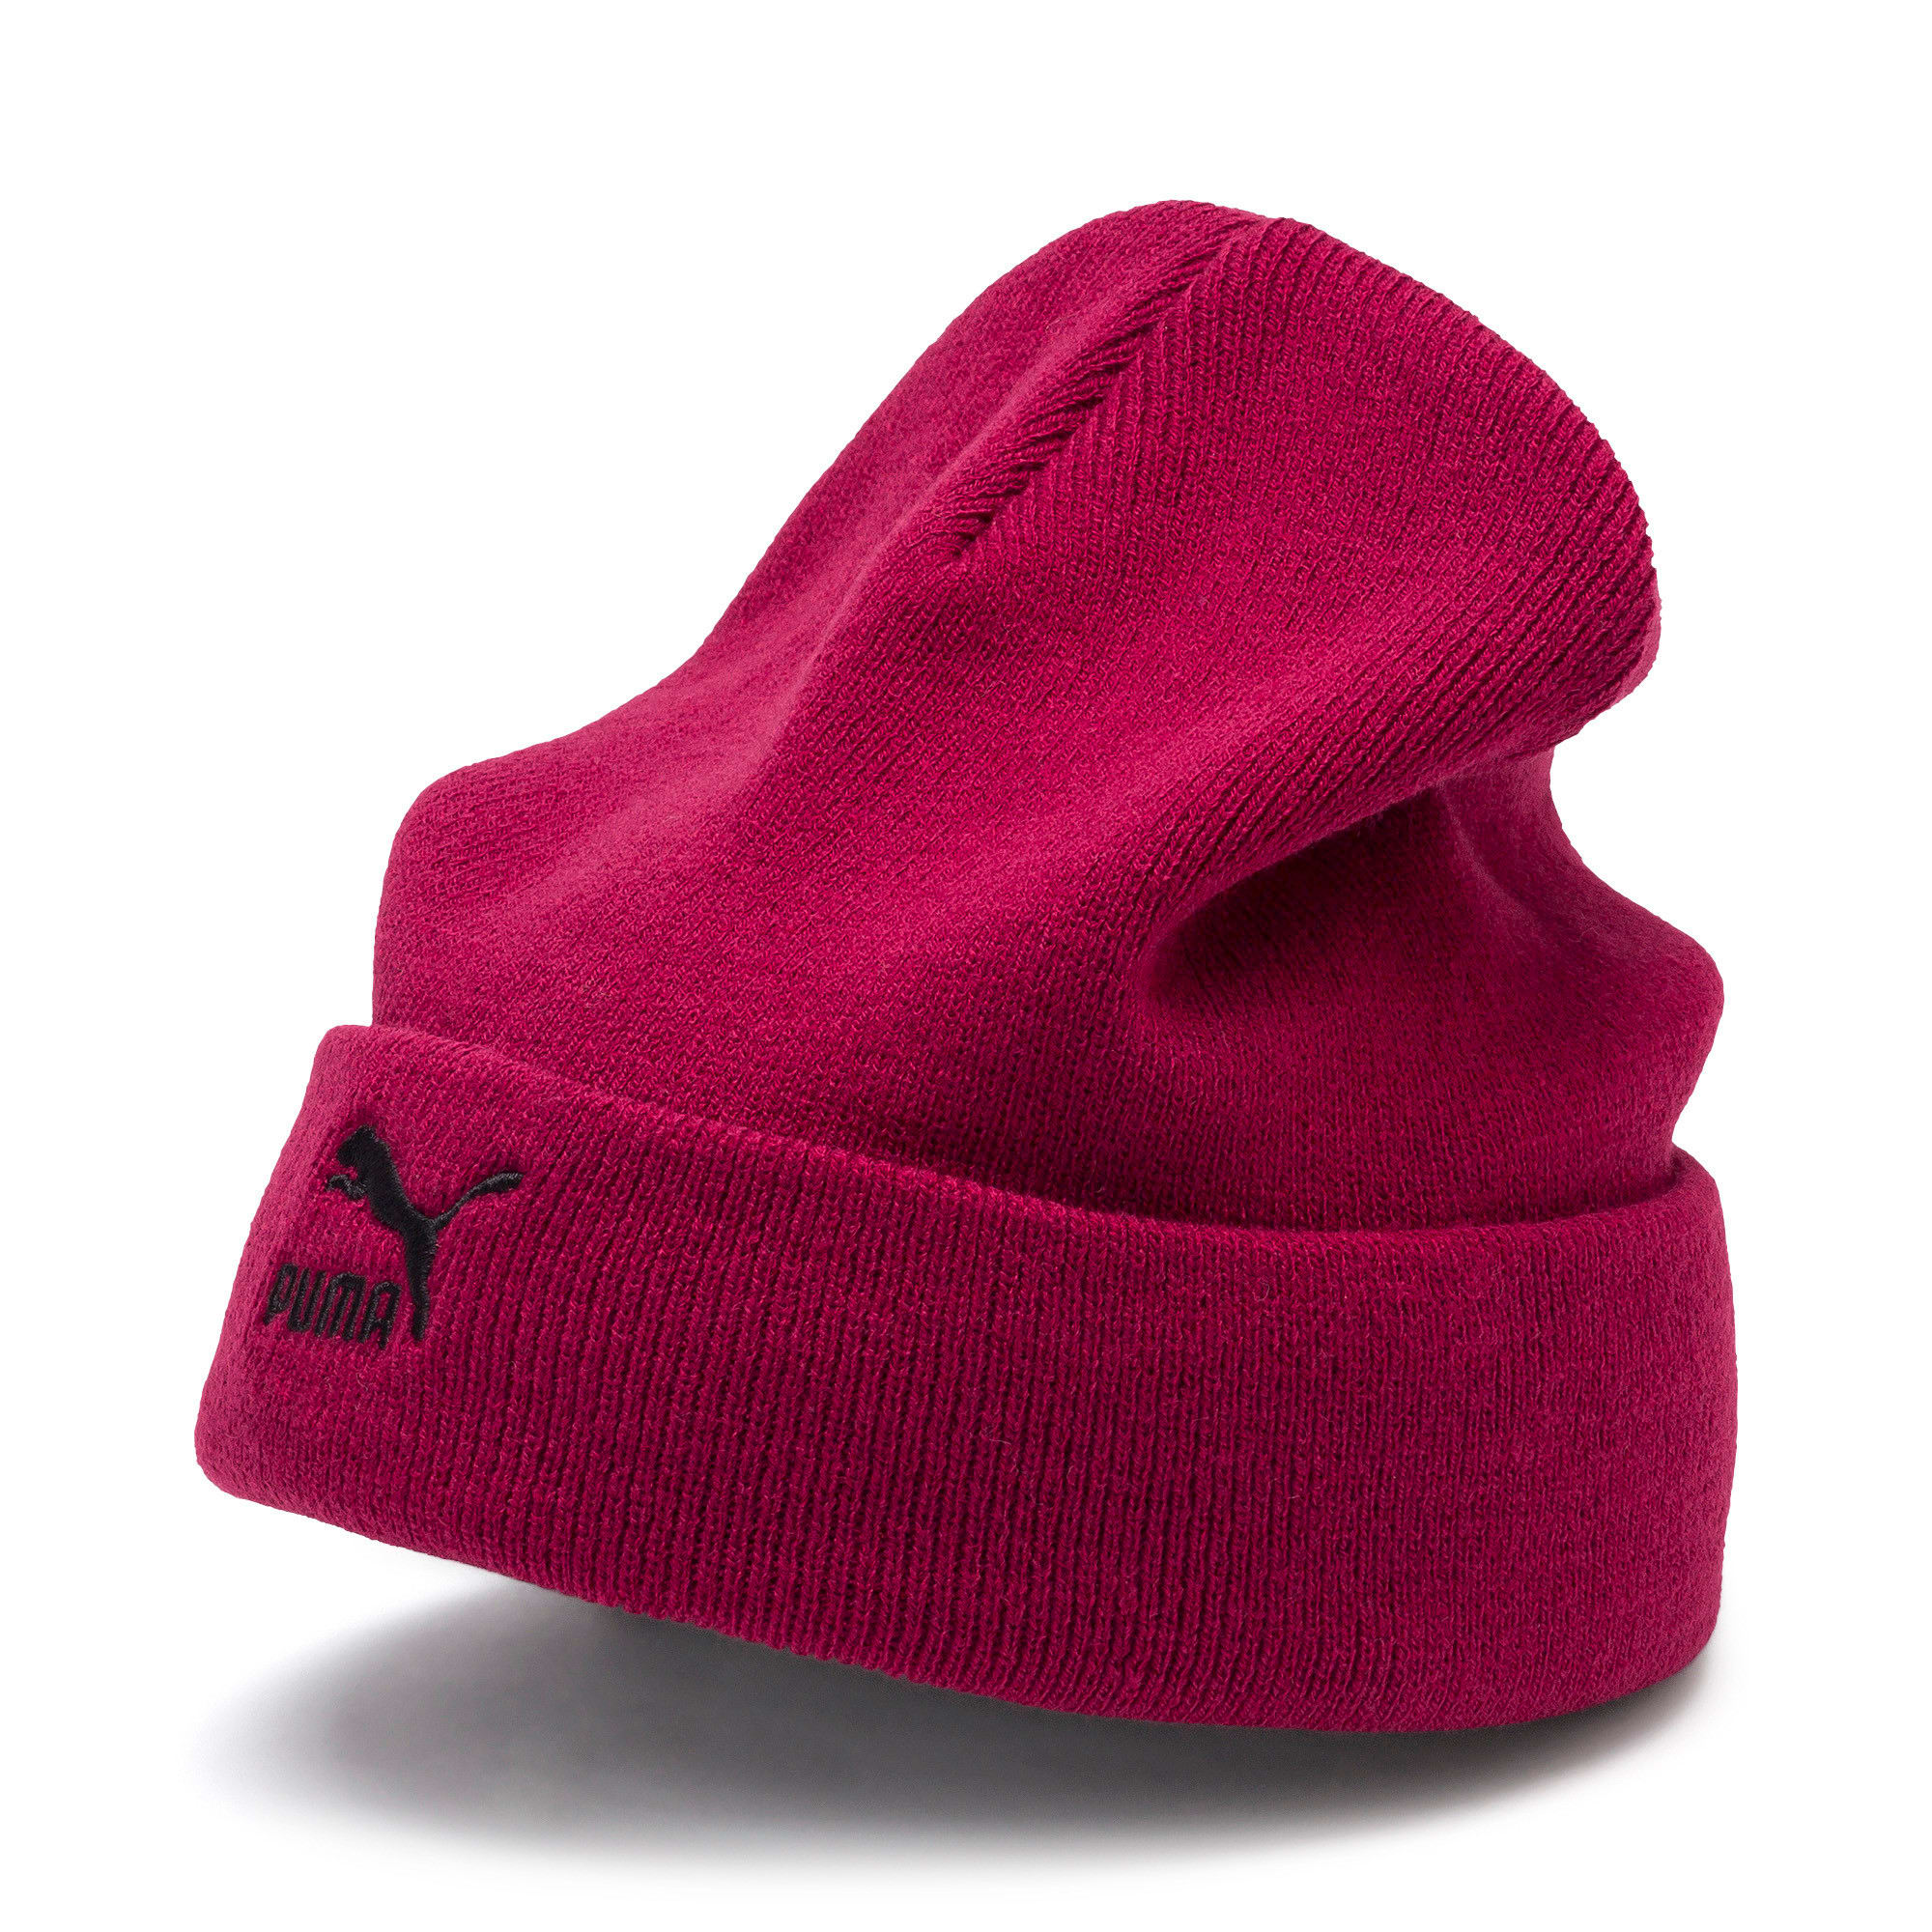 Archive Mid Fit Beanie, Rhubarb, large